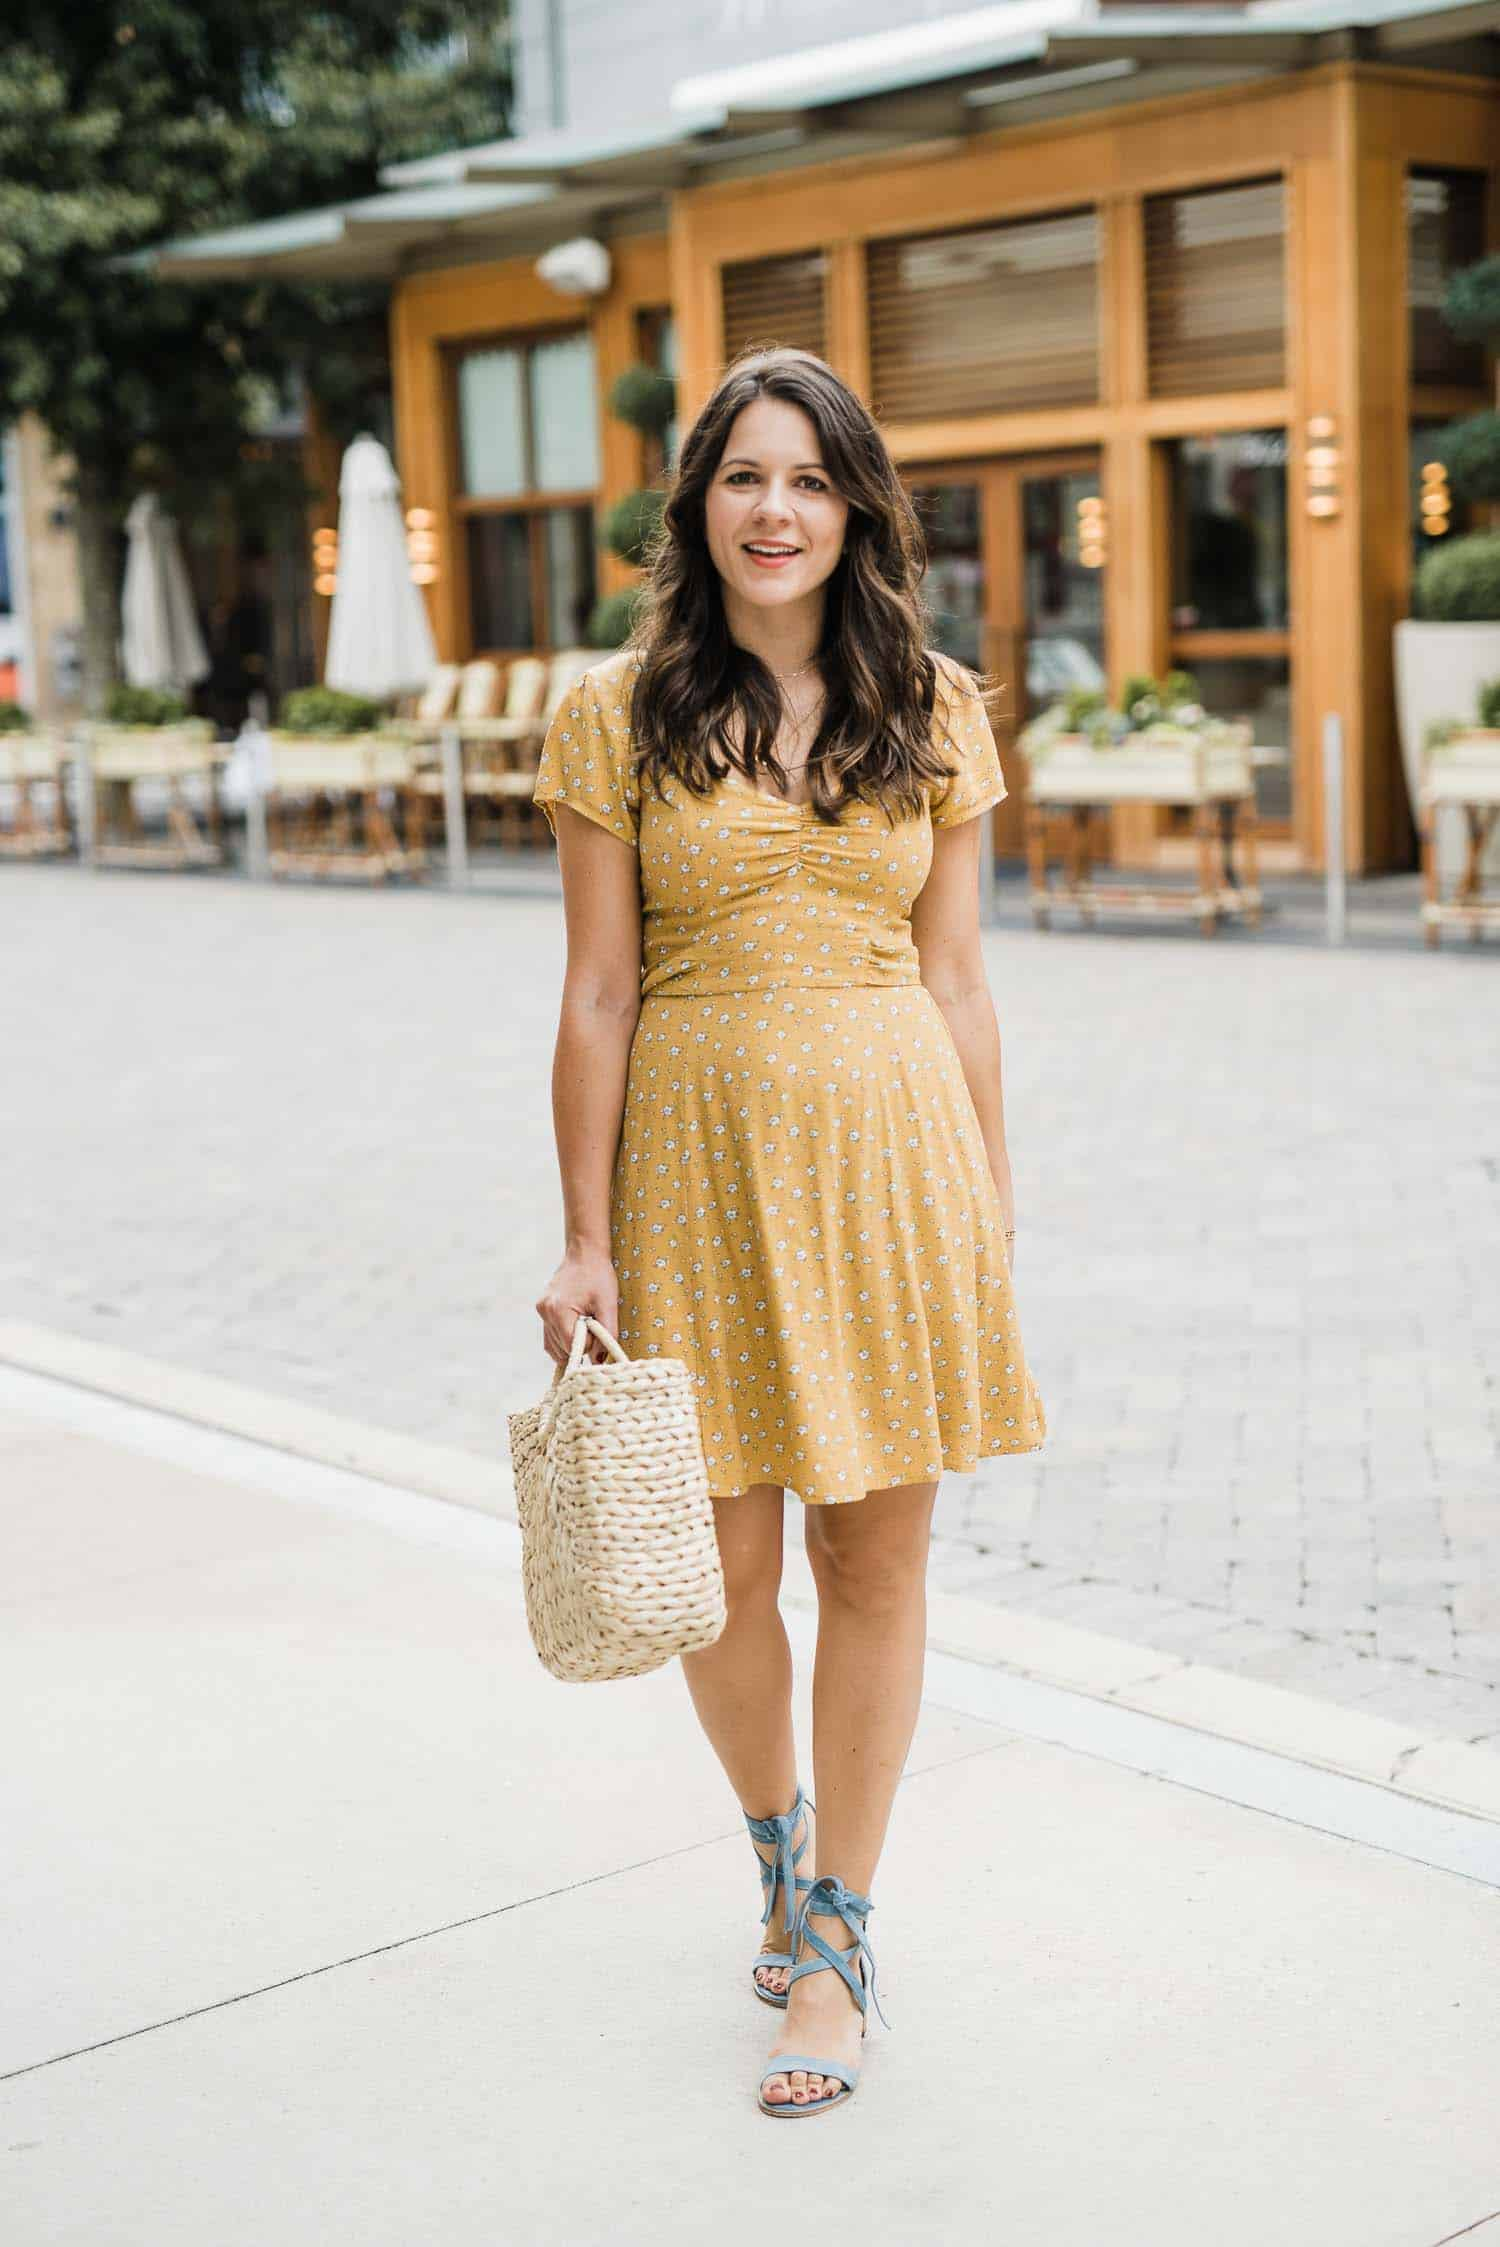 Abercrombie dress, how to take your summer dresses into fall - My Style Vita